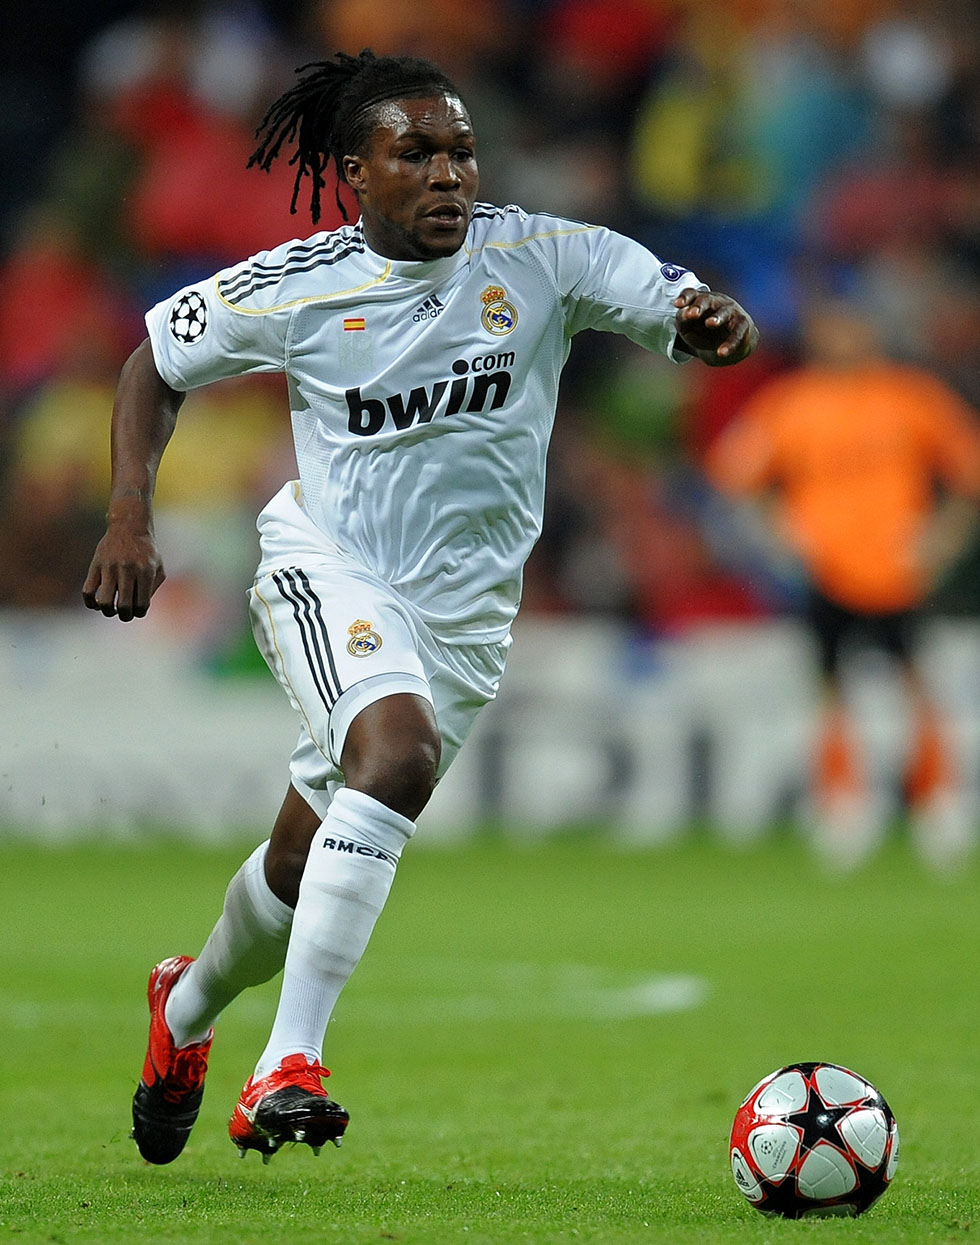 MADRID, SPAIN - OCTOBER 21: Royston Drenthe (R) of Real Madrid runs for the ball with Marco Borriello of AC Milan during the Champions League group C match between Real Madrid and AC Milan at the Estadio Santiago Bernabeu on October 21, 2009 in Madrid, Spain. AC Milan won the match 3-2. (Photo by Jasper Juinen/Getty Images)